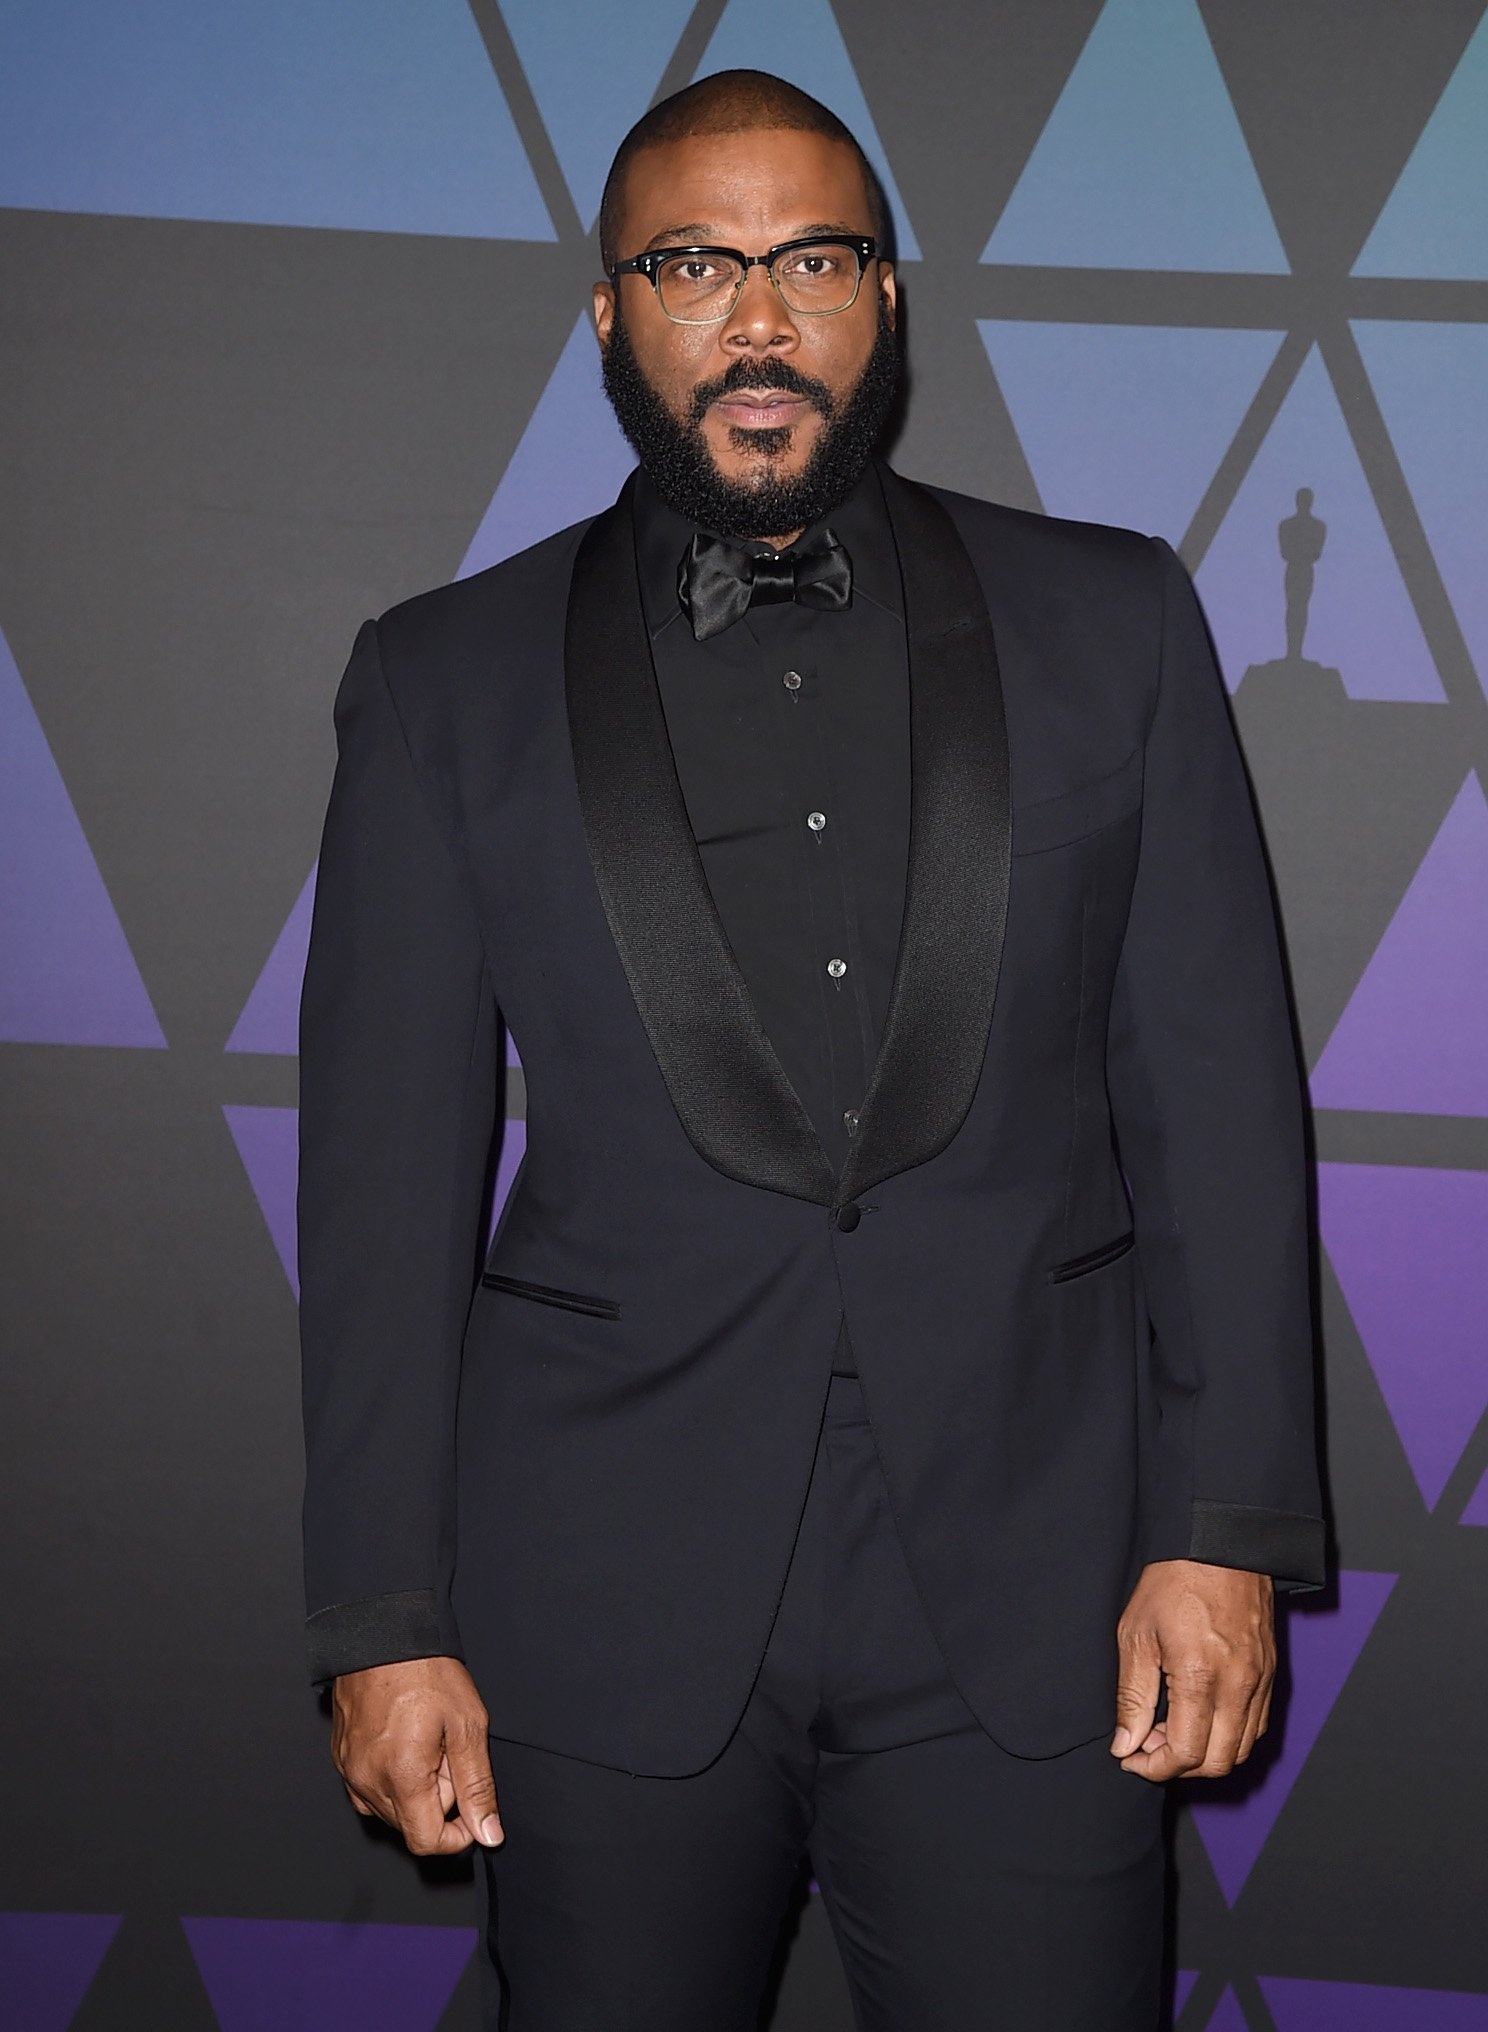 Tyler Perry at the 10th annual Governors Awards on November 18, 2018 | Photo: GettyImages